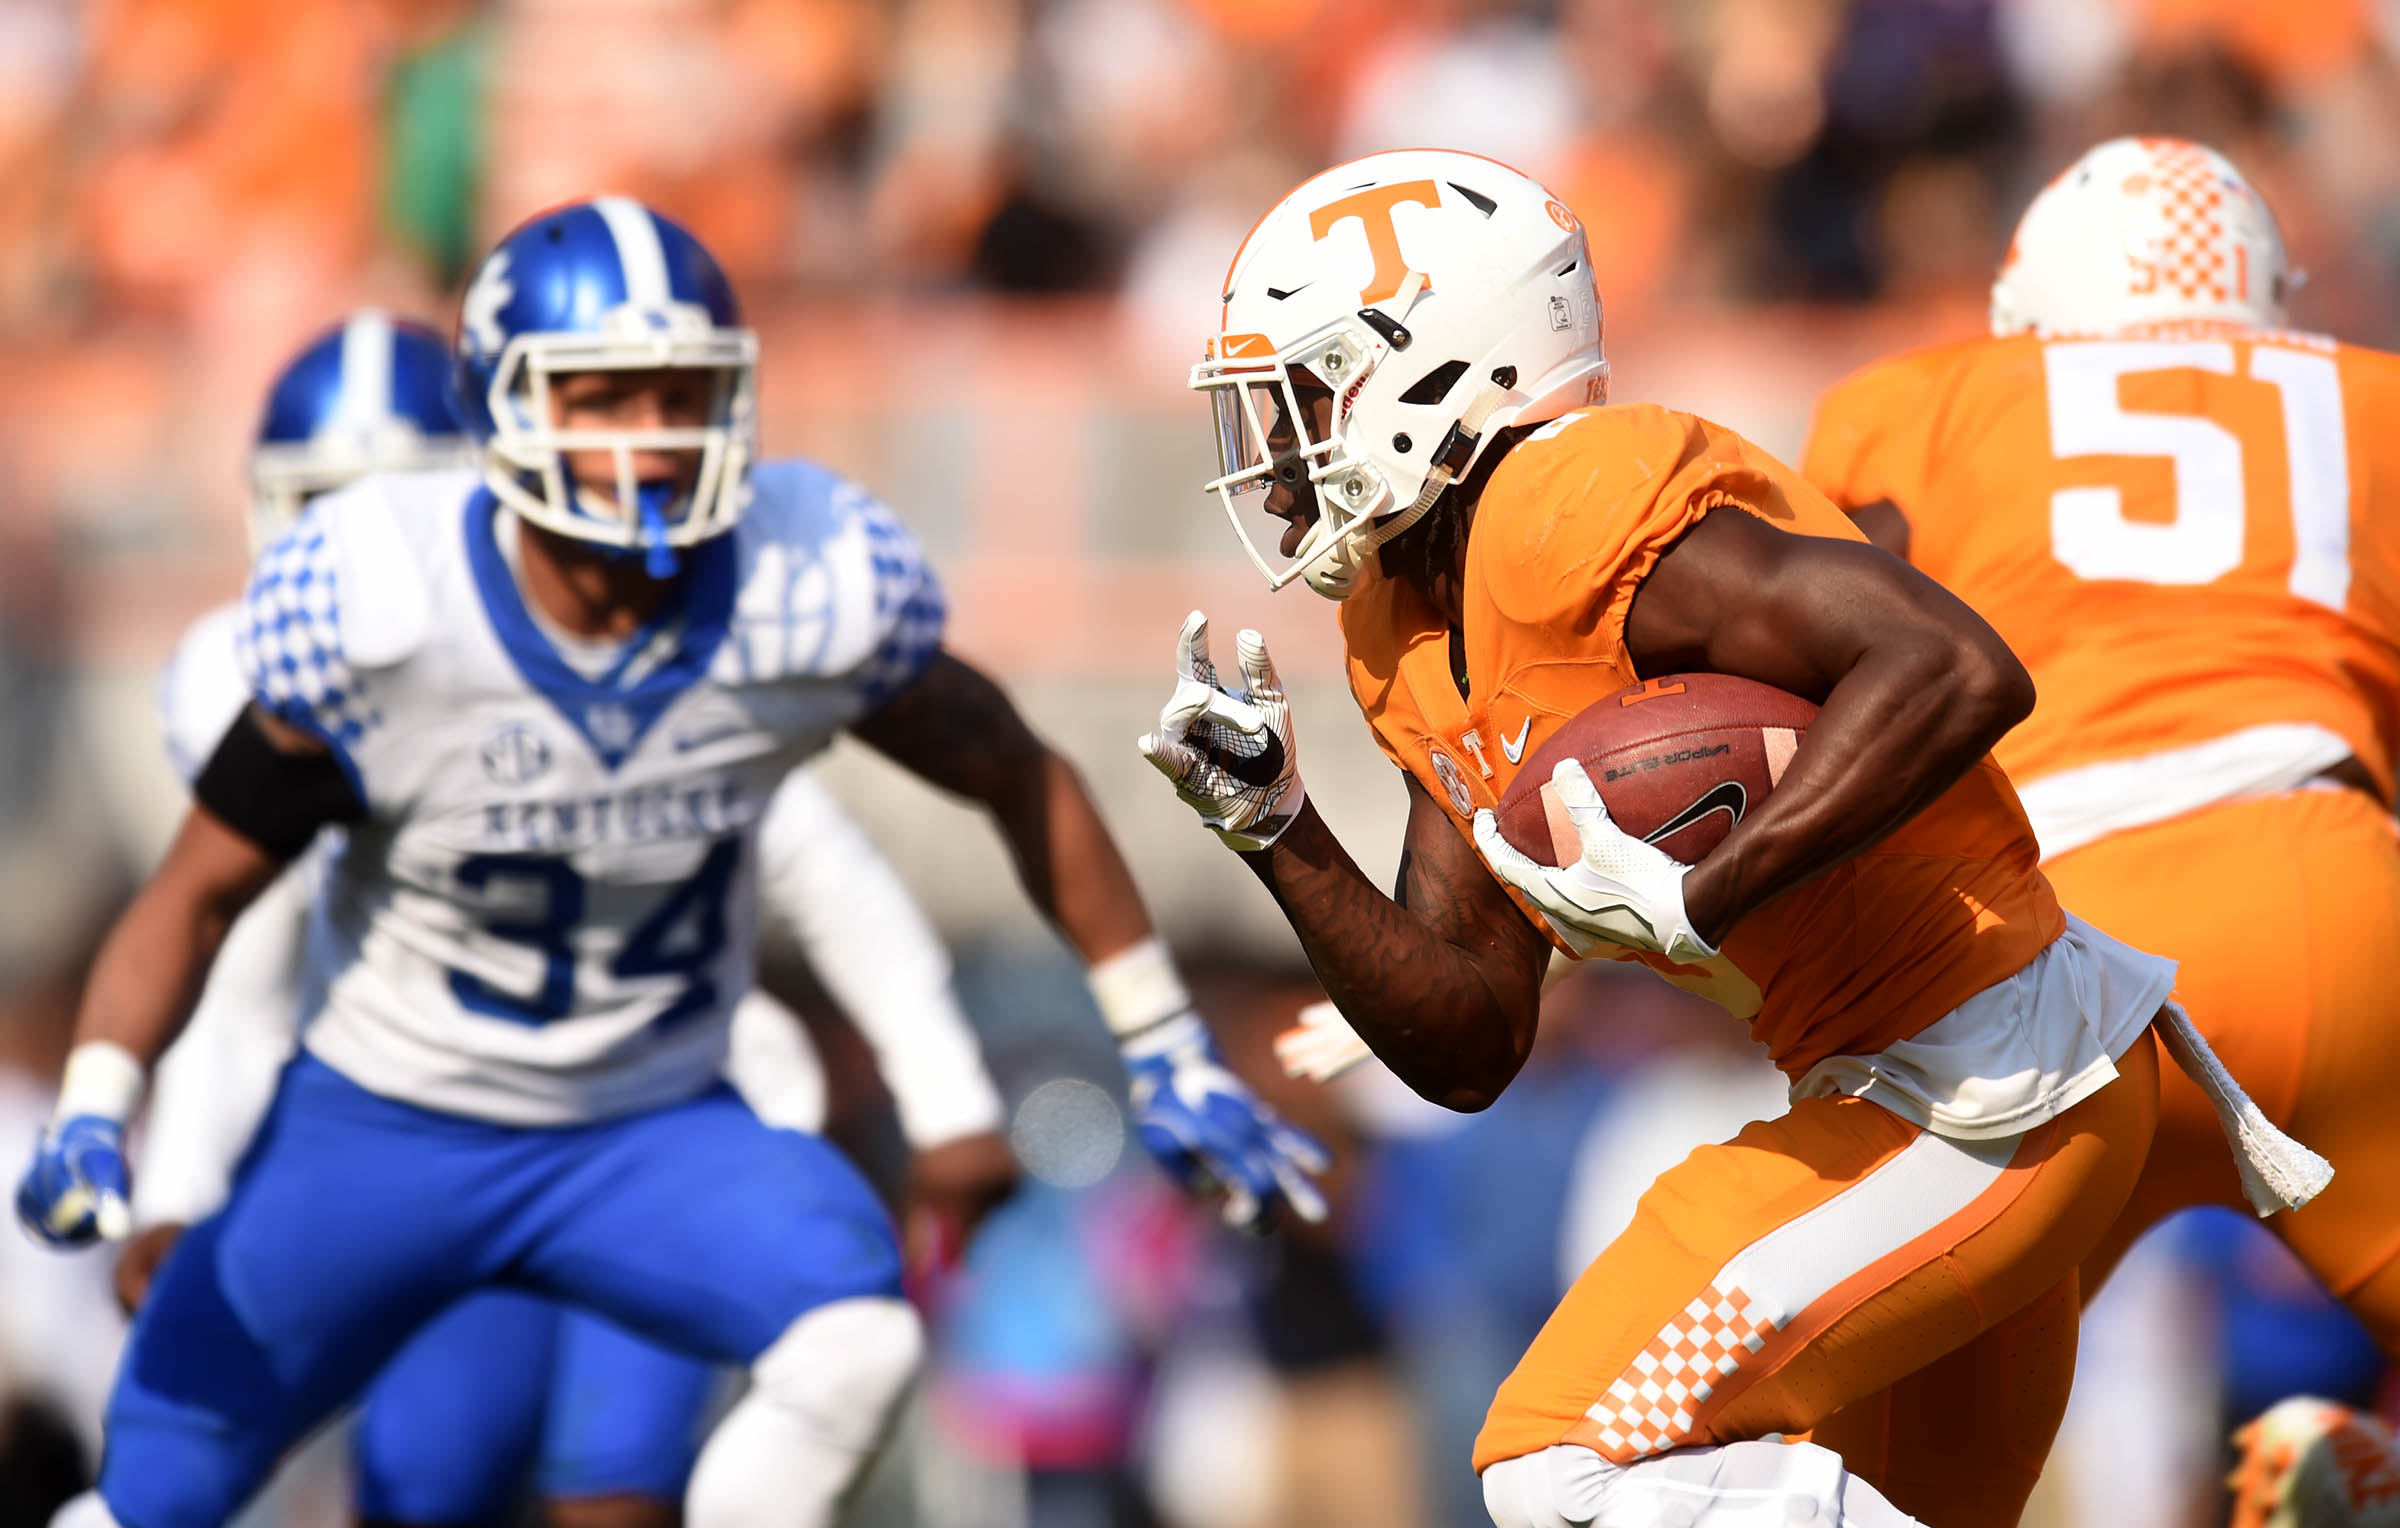 Tennessee running back Alvin Kamara (6) carries the ball against Kentucky during the first half of an NCAA college football game at Neyland Stadium on Saturday, Nov. 12, 2016, in Knoxville, Tenn. (Amy Smotherman Burgess/Knoxville News Sentinel via AP)